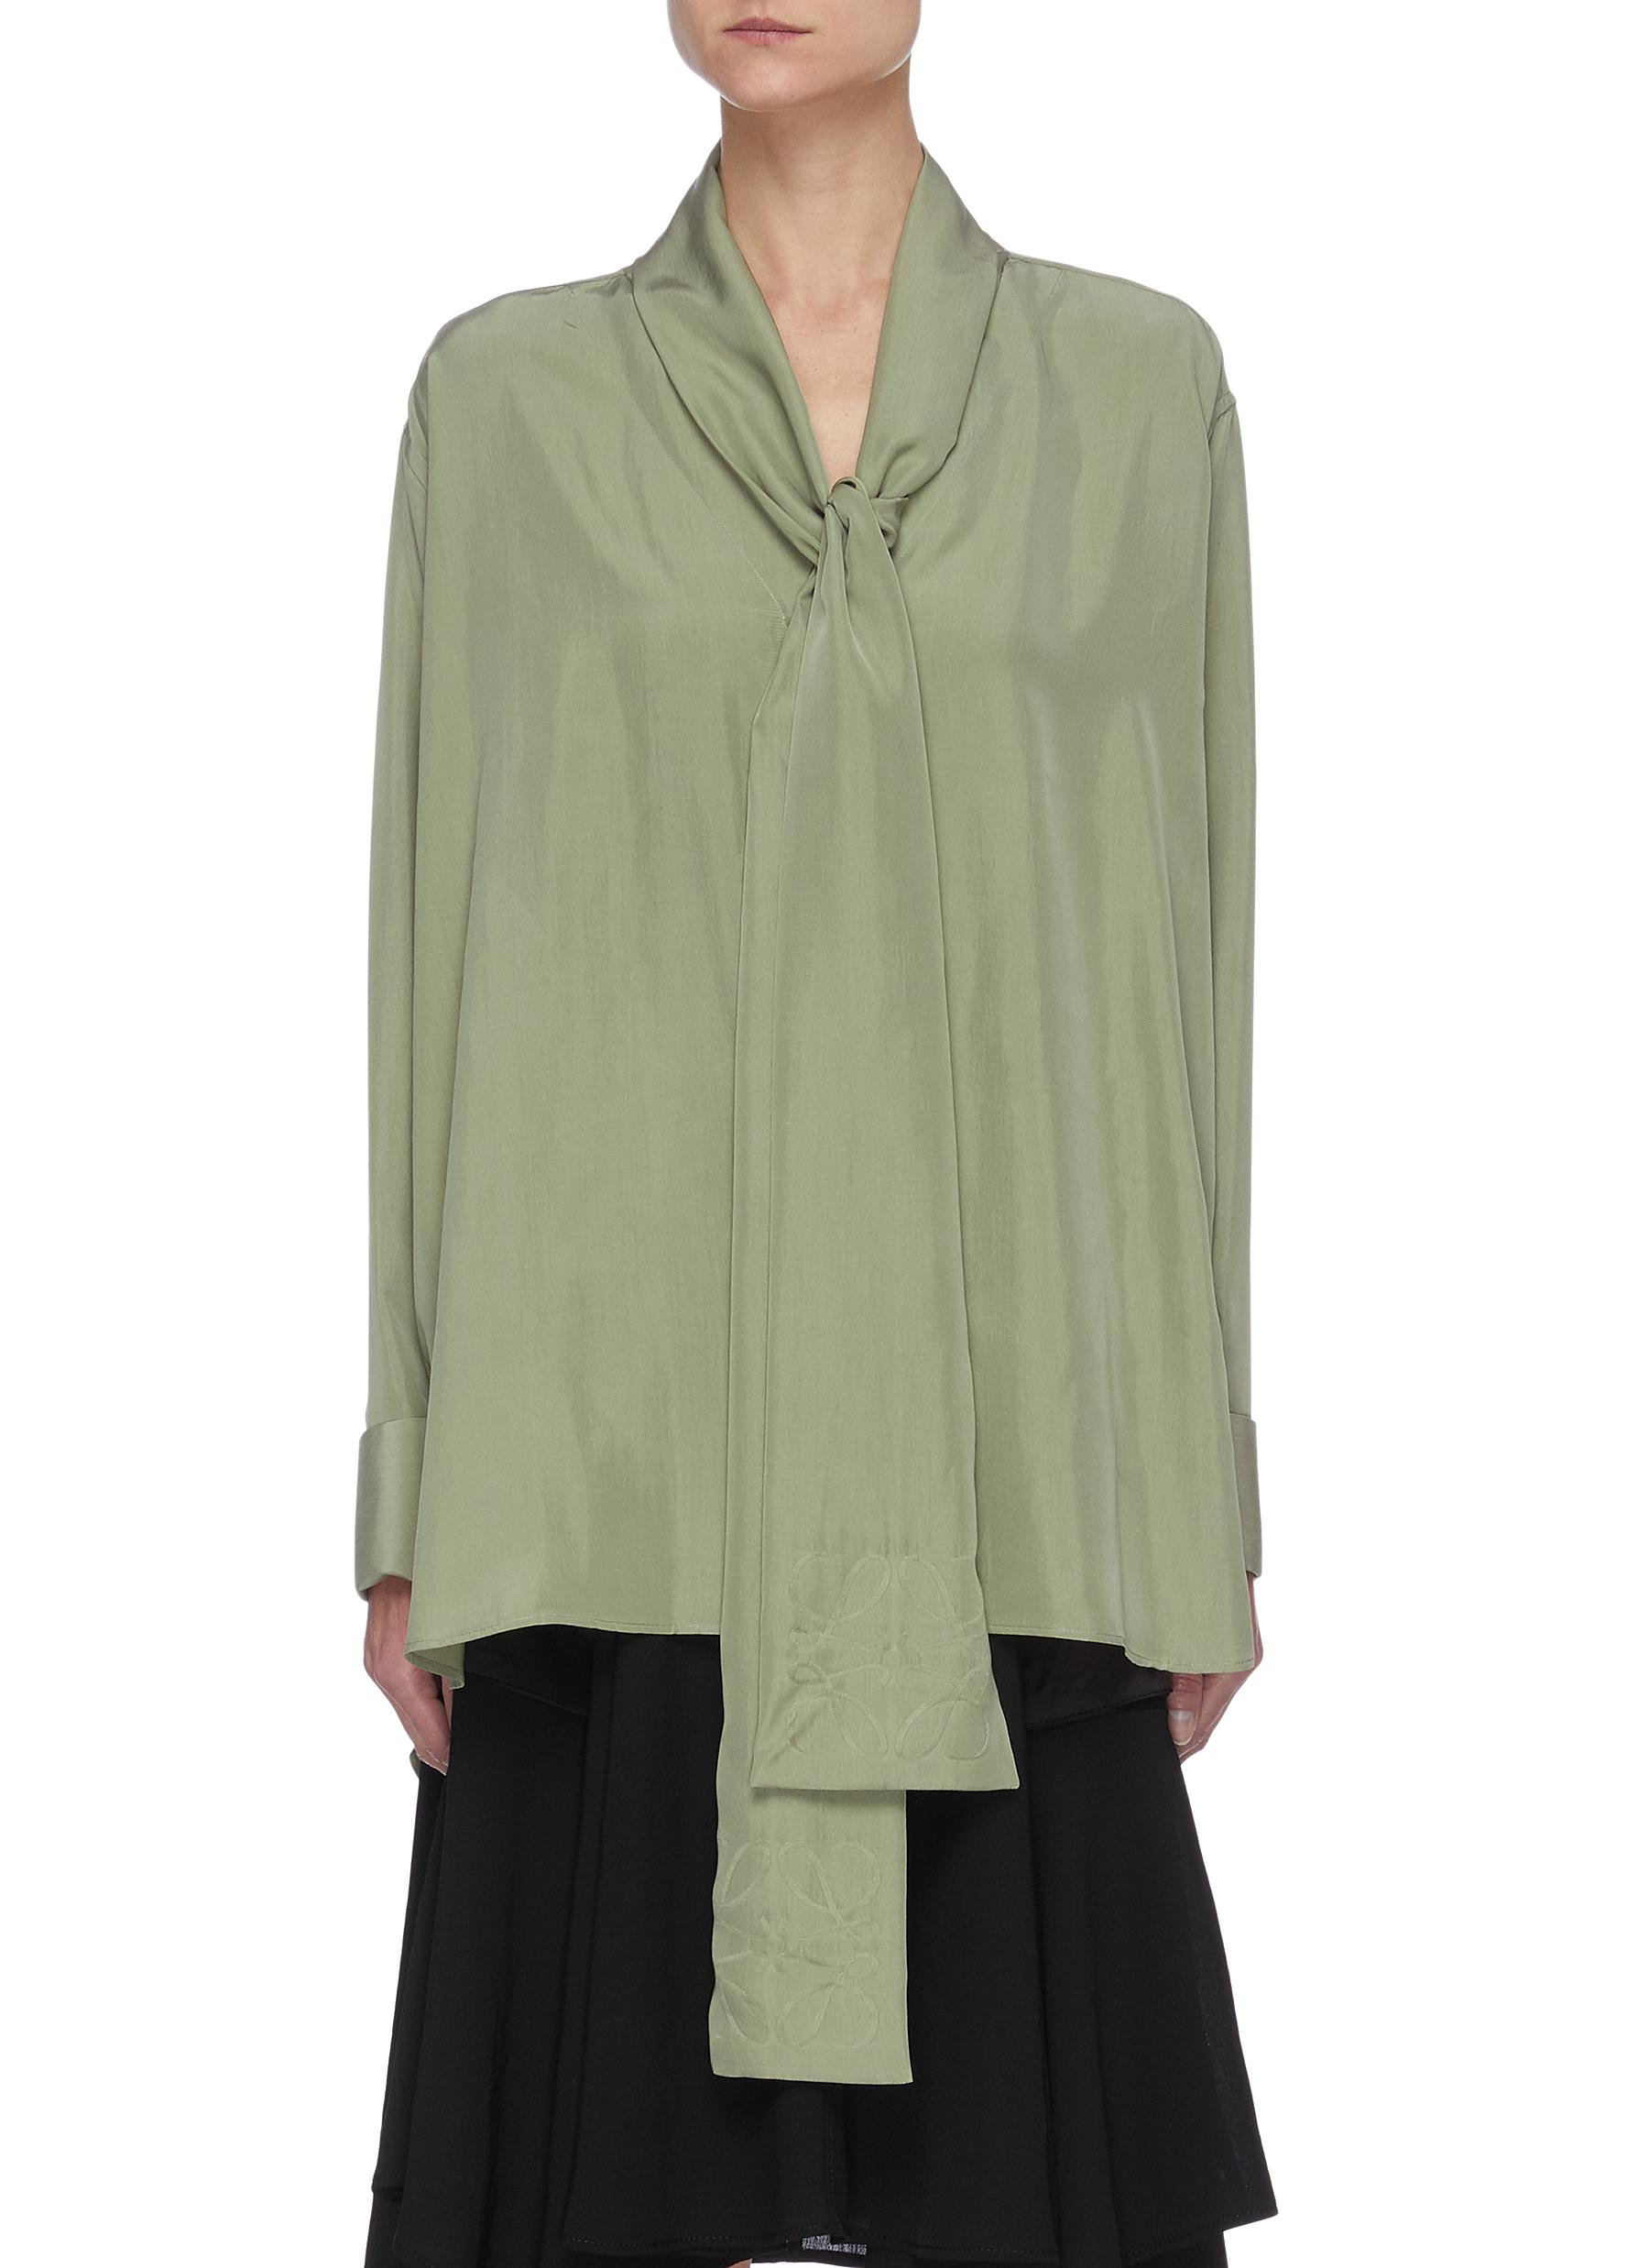 Loewe ANAGRAM EMBROIDERED LAVALIERE SCARF SILK BLOUSE